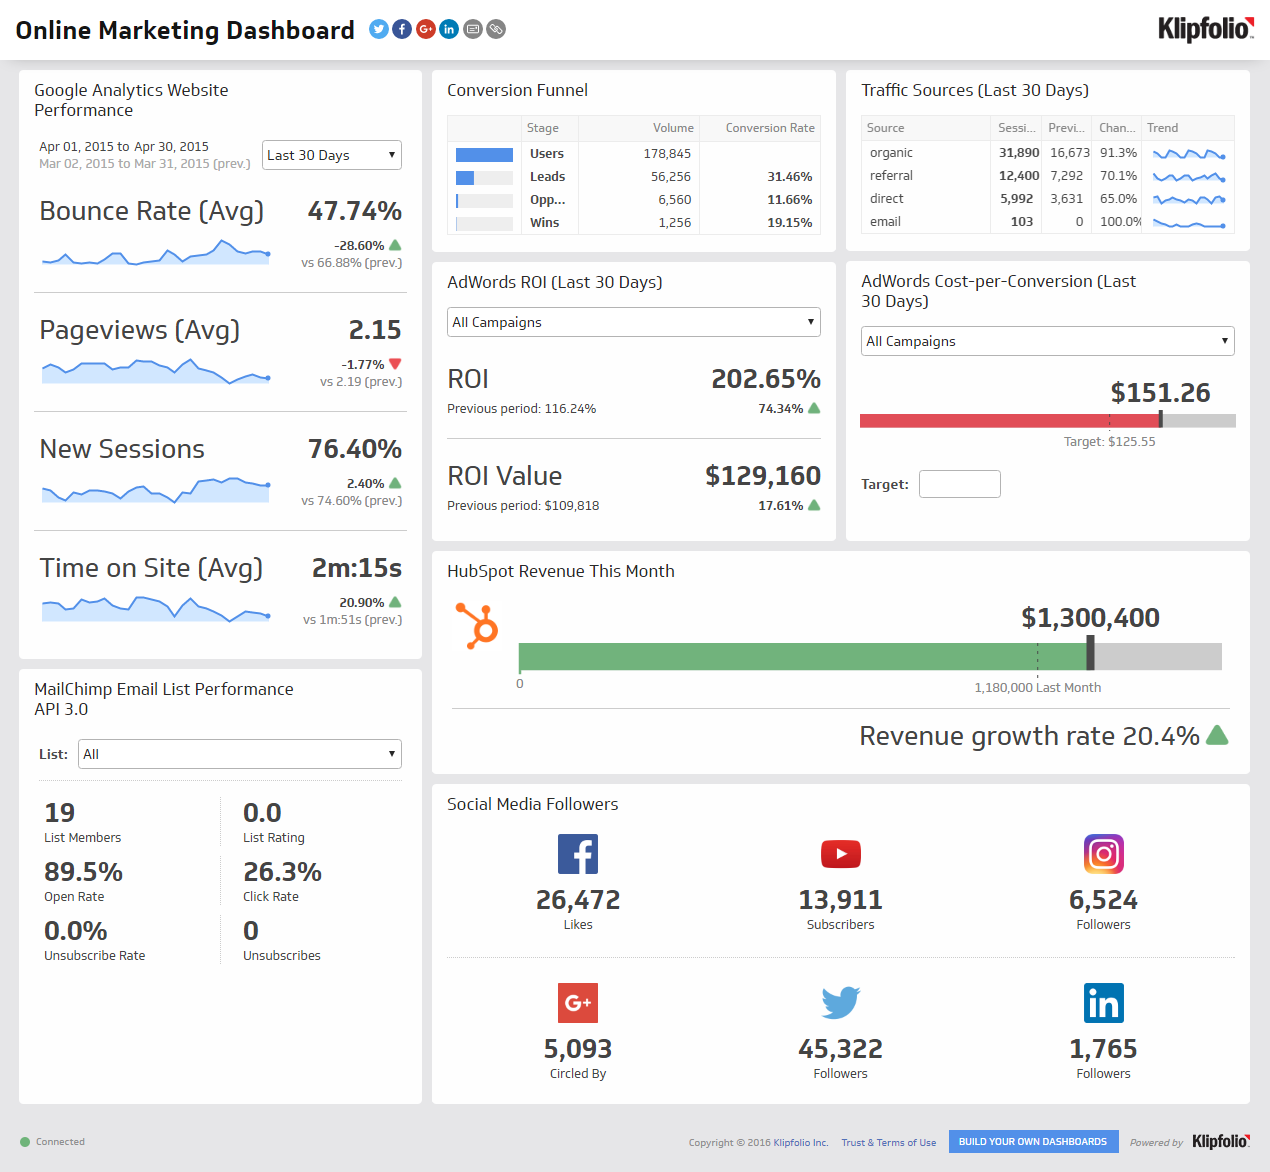 Klipfolio Demo - Klipfolio Online Marketing Dashboard